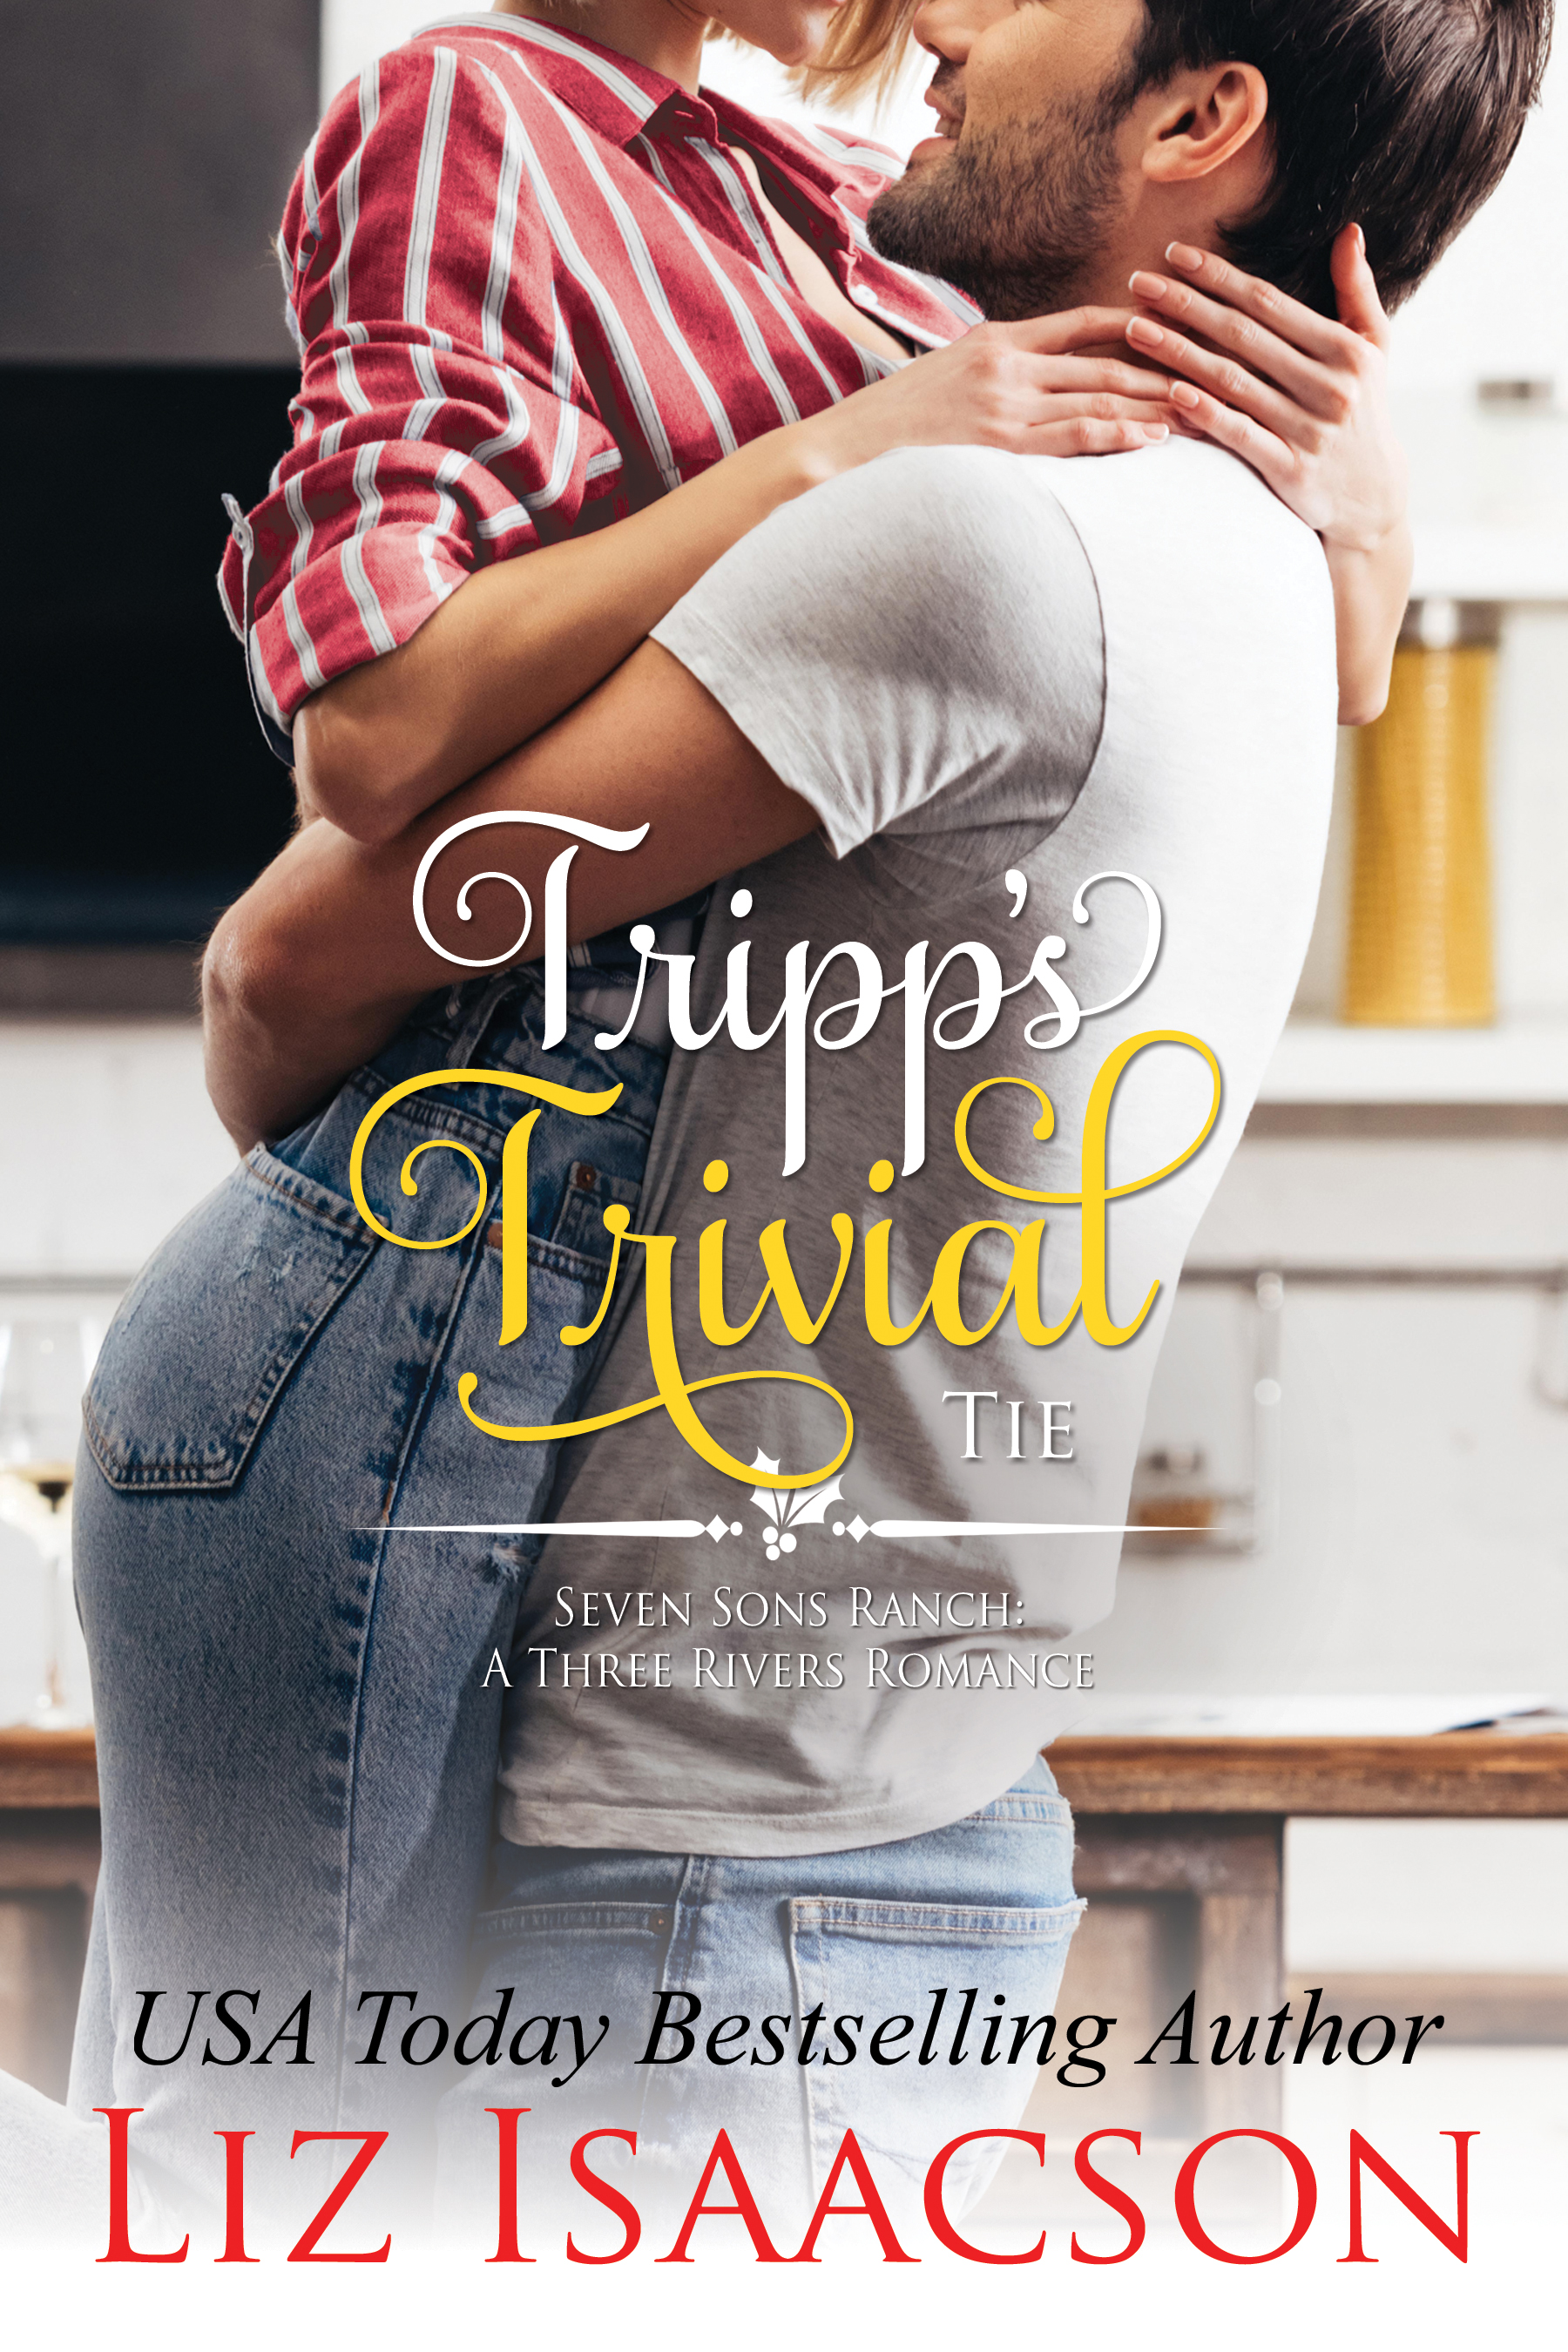 Tripps Trivial Tie FRONT COVER